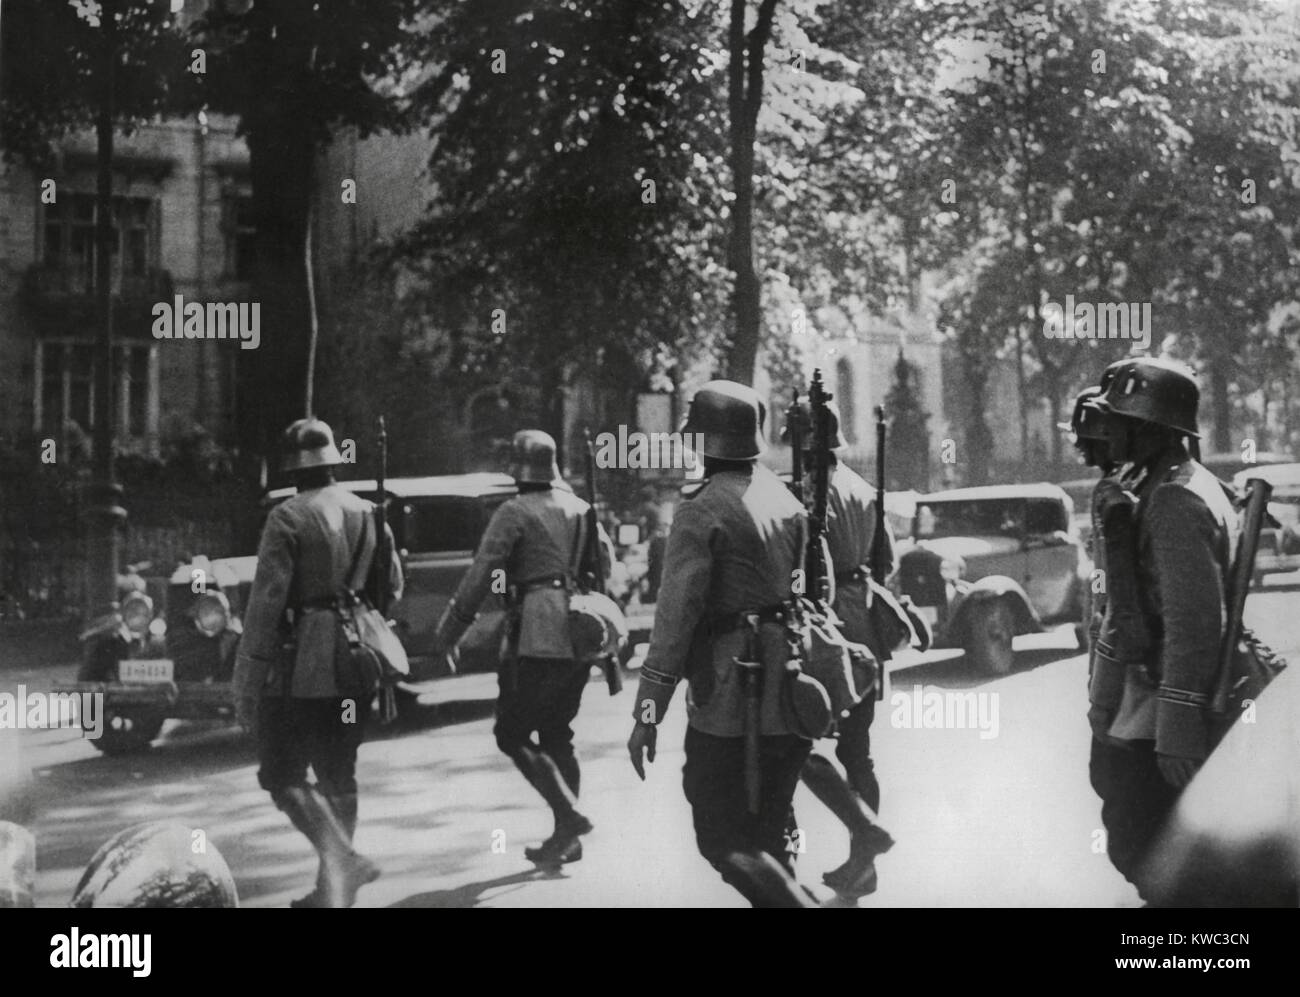 German Army patrol in Berlin during the Nazi Party purge of the Sturmabteilung (SA) leadership. June 30-July 2, - Stock Image